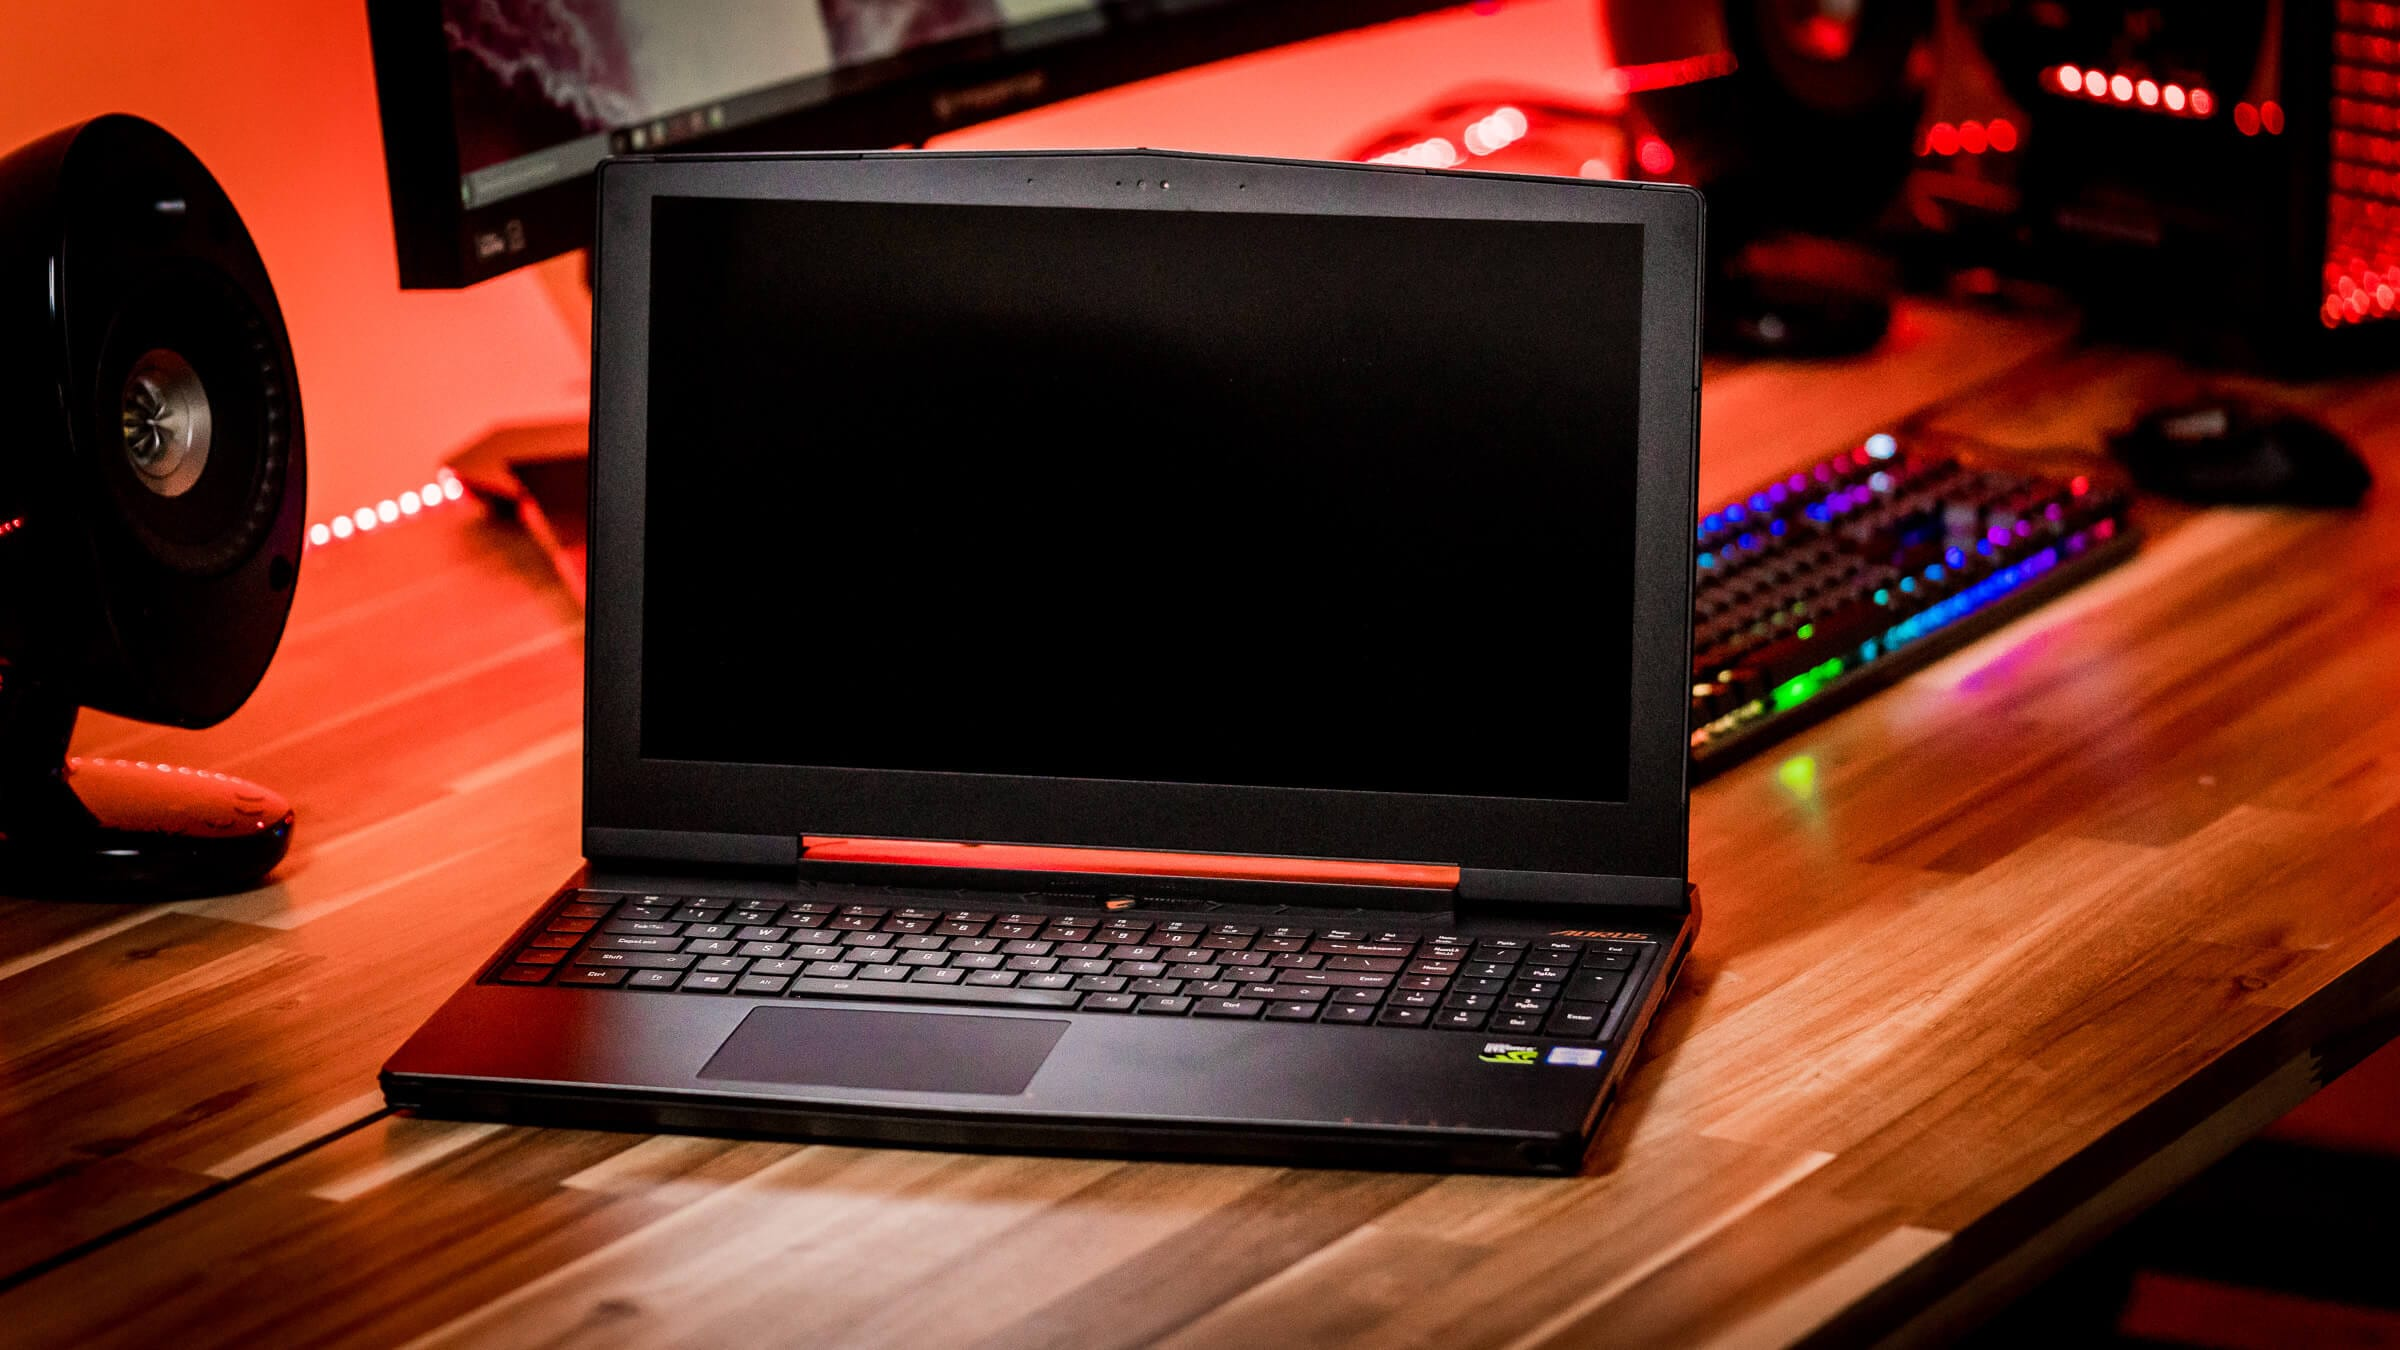 10 best laptops for gaming in 2017 uk best gaming laptops - Best laptop wallpapers 2017 ...